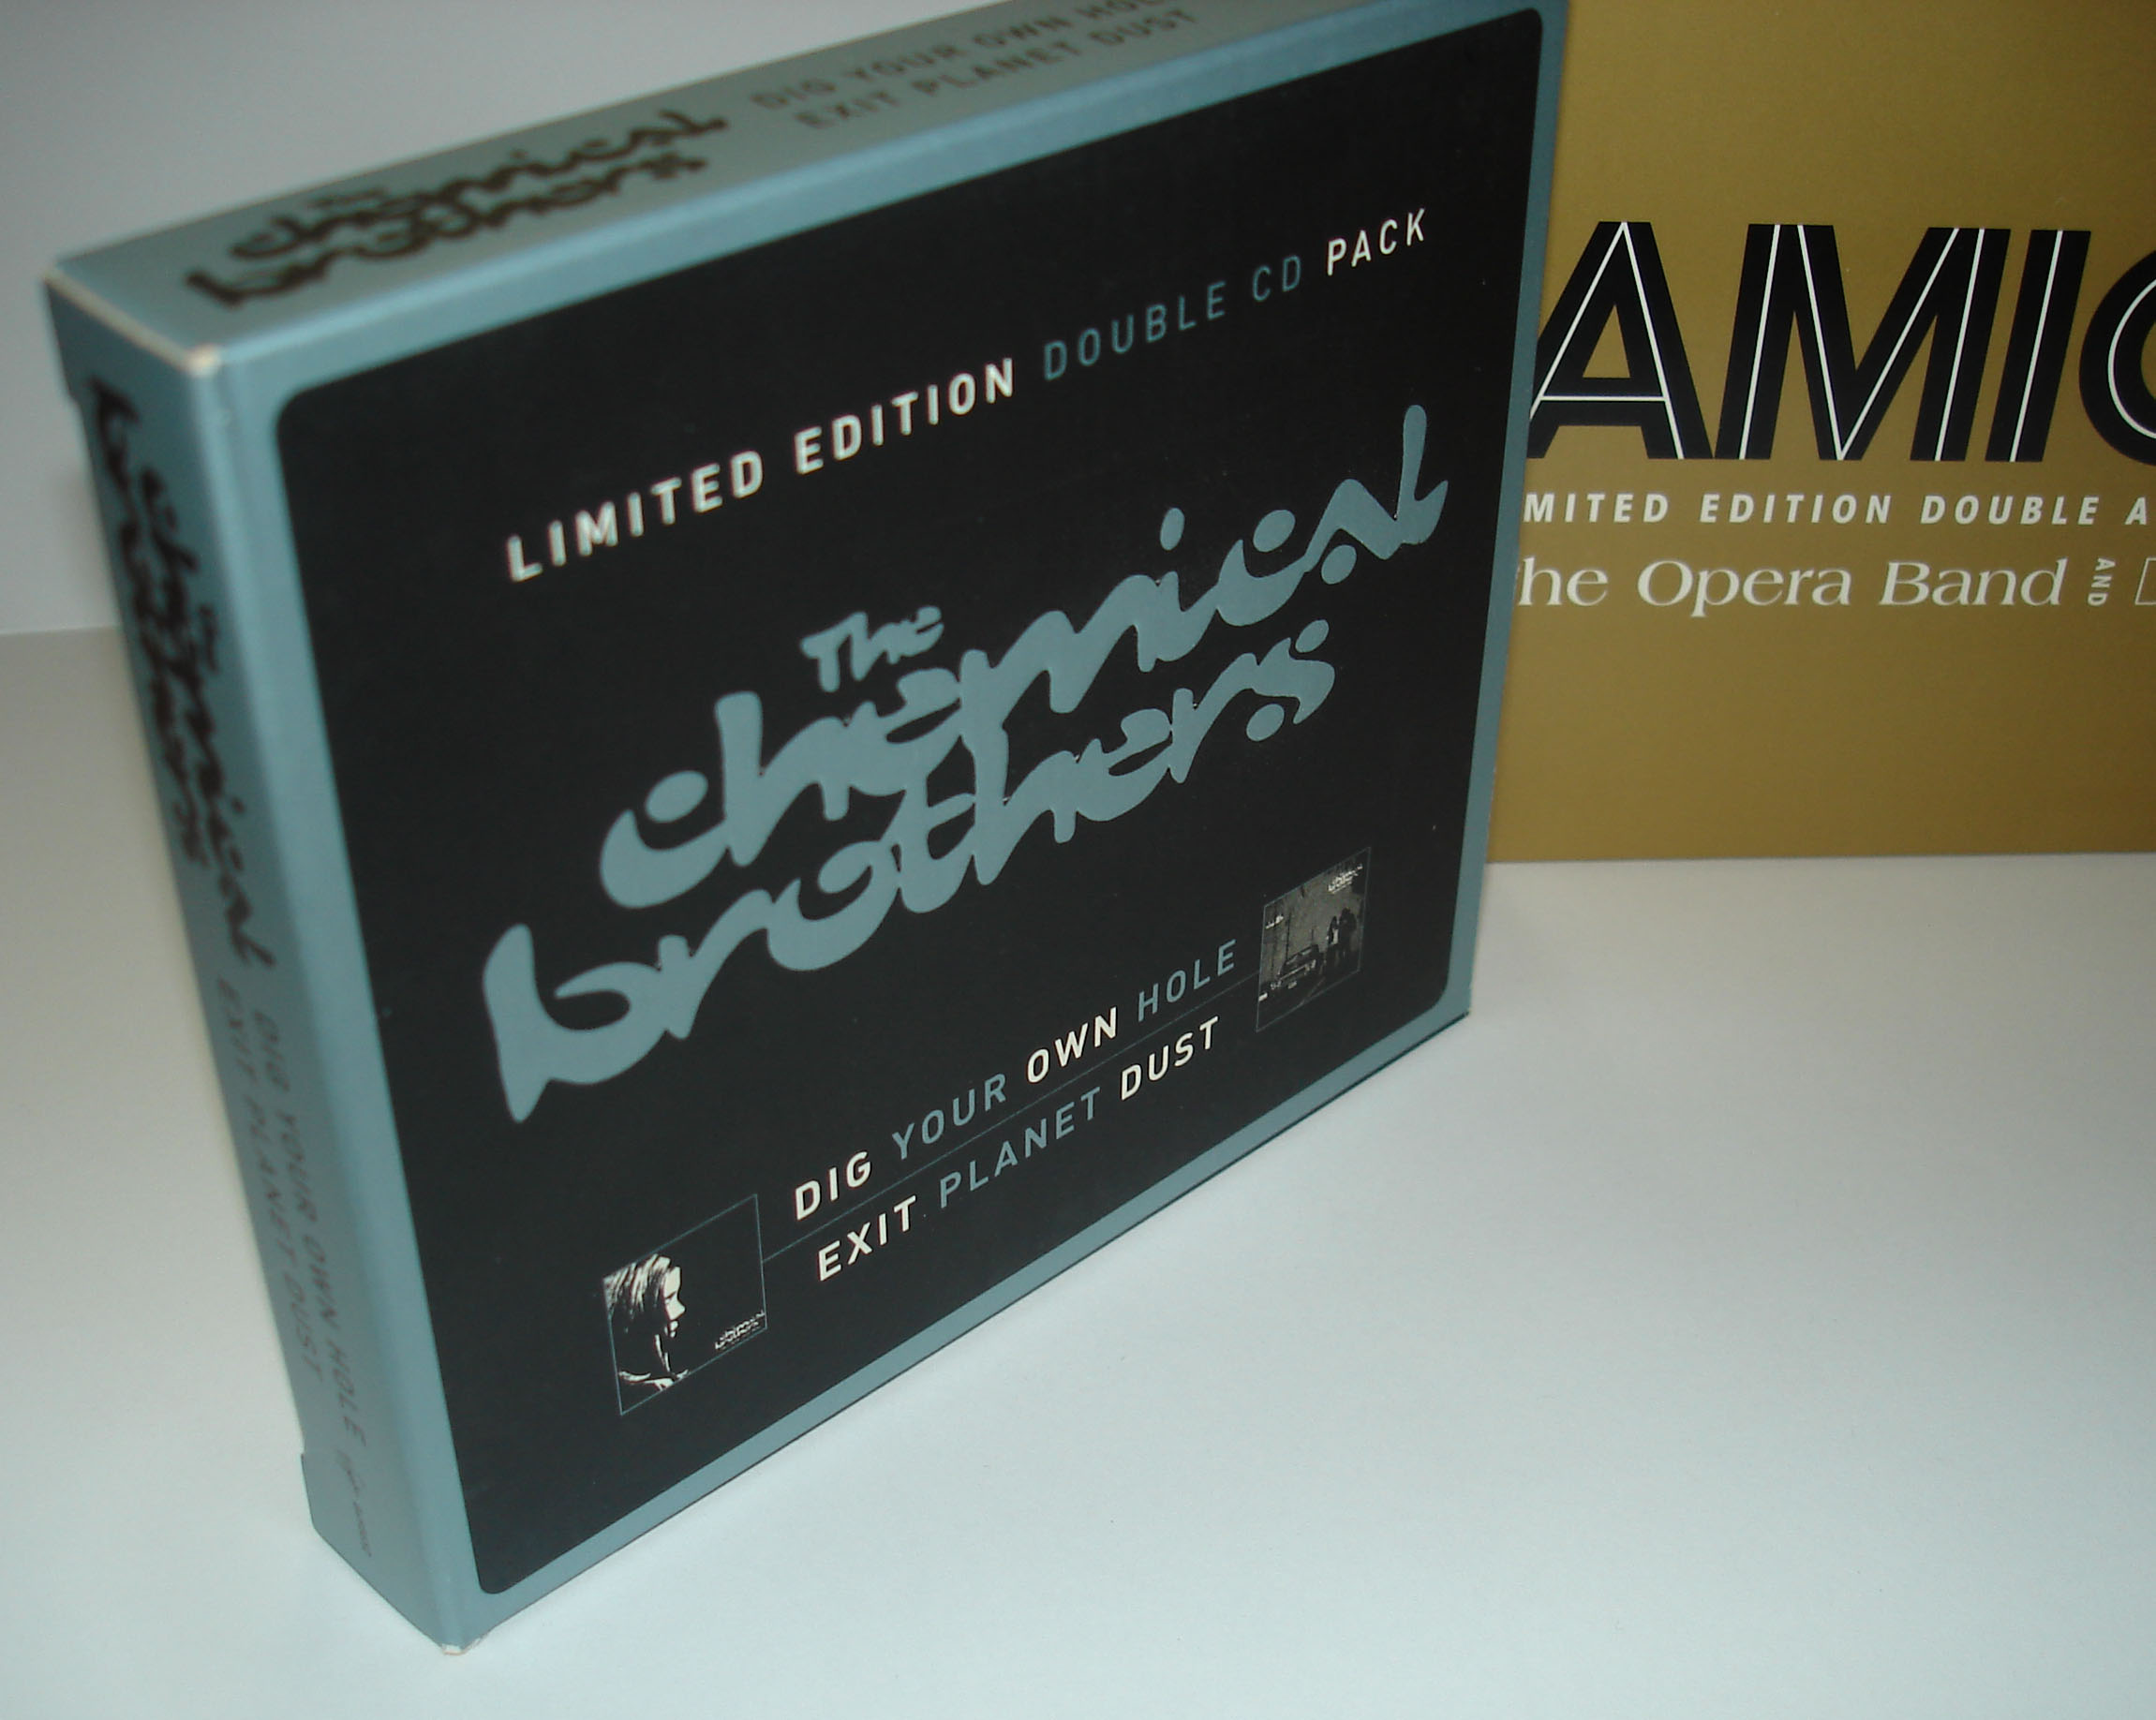 THE CHEMICAL BROTHERS - DOUBLE CD PACK - SLIPCASE